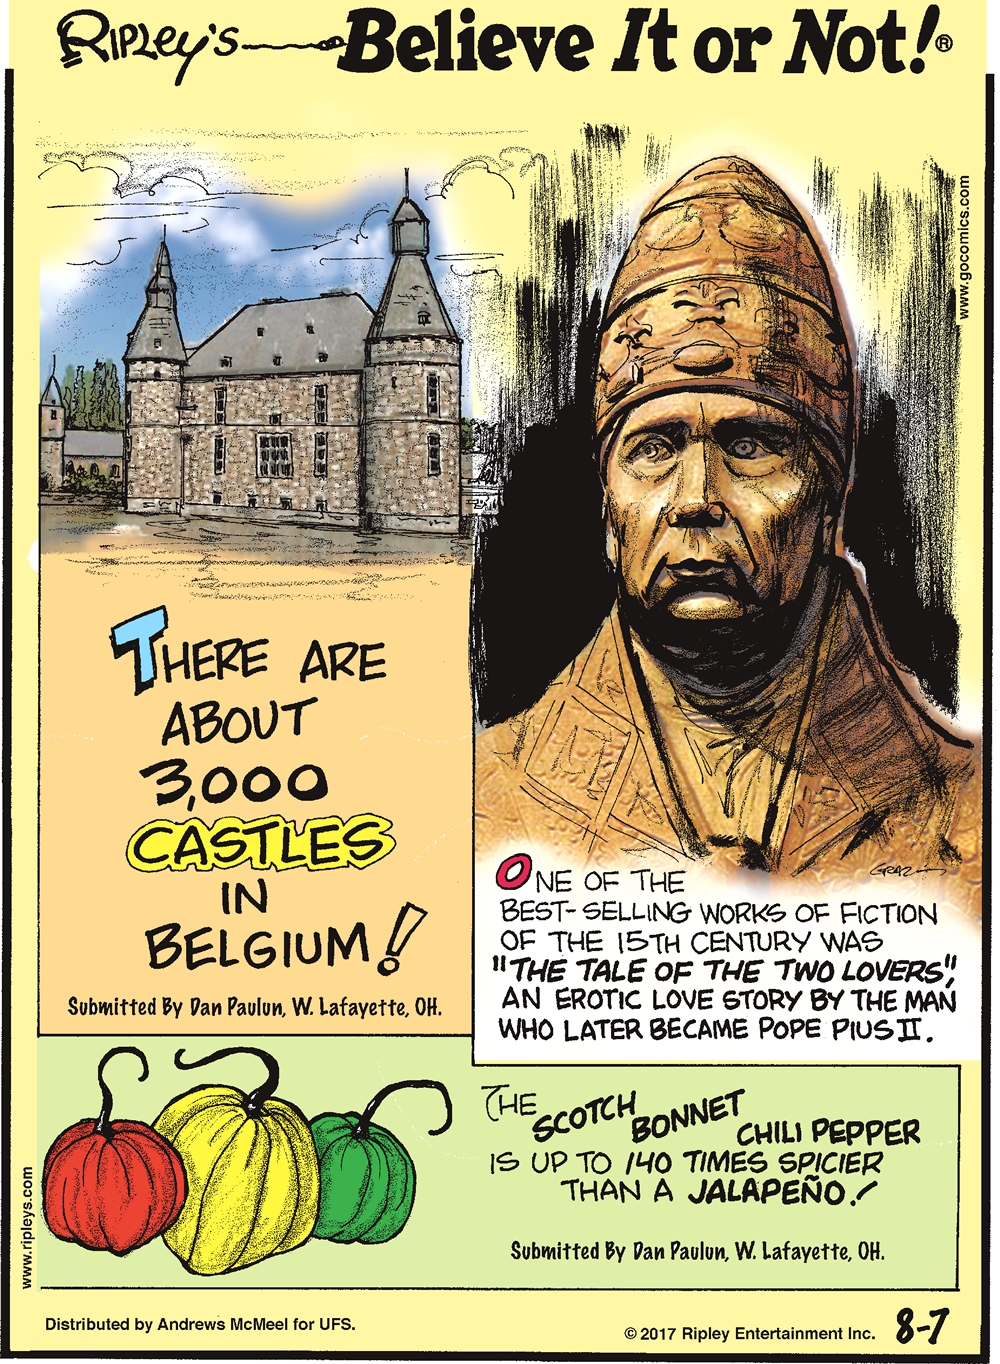 "There are about 3,000 castles in Belgium! Submitted by Dan Paulun, W. Lafayette, OH.-------------------- One of the best-selling works of fiction of the 15th century was ""The Tale of the Two Lovers,"" an erotic love story by the man who later became Pope Pius II.-------------------- The scotch bonnet chili pepper is up to 140 times spicier than a jalapeno! Submitted by Dan Paulun, W. Lafayette, OH."